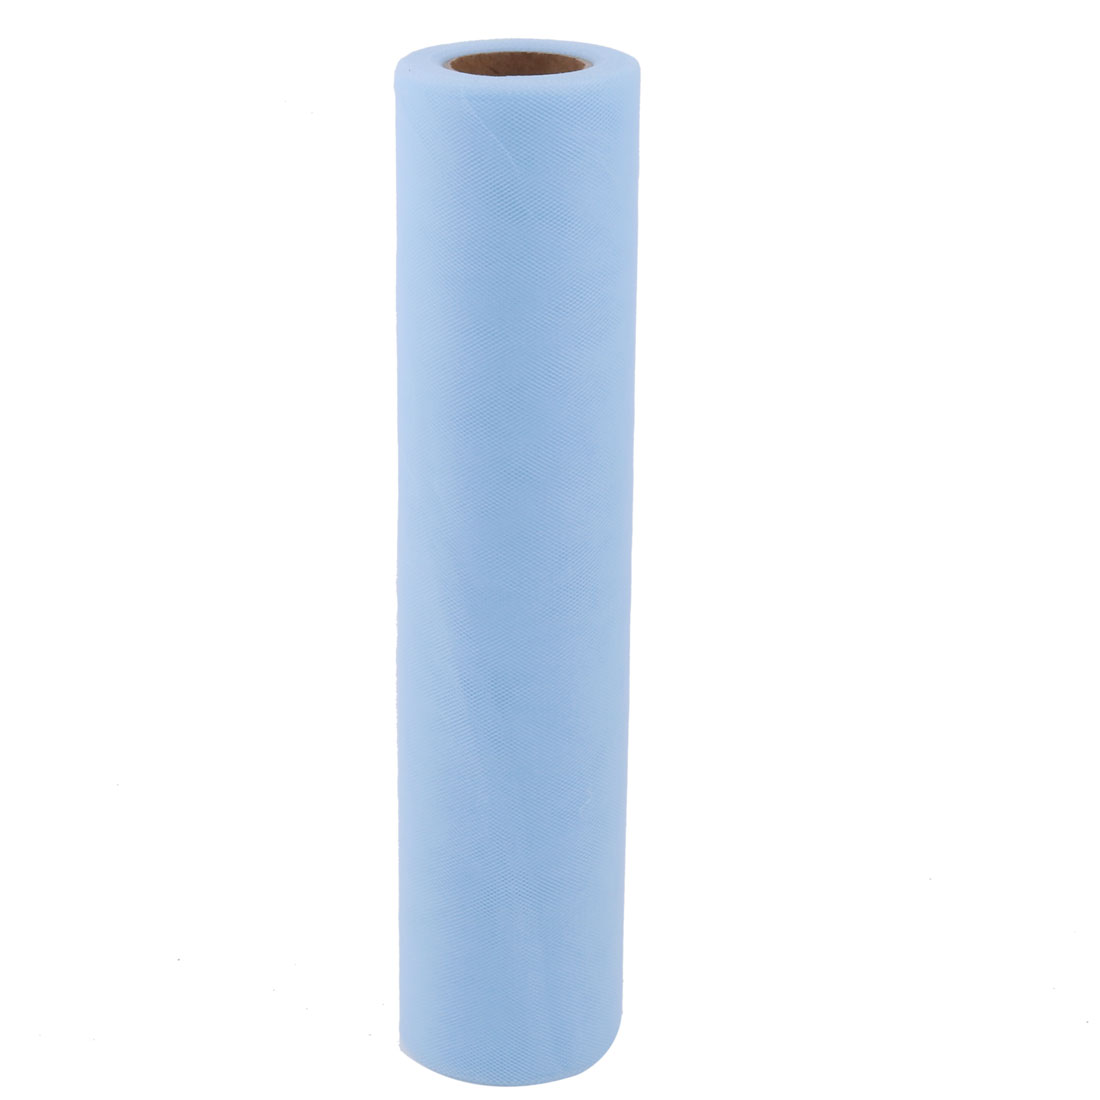 Bride Polyester Skirt Dress Sewing DIY Ornament Tulle Spool Roll Light Blue 12 Inch x 25 Yards